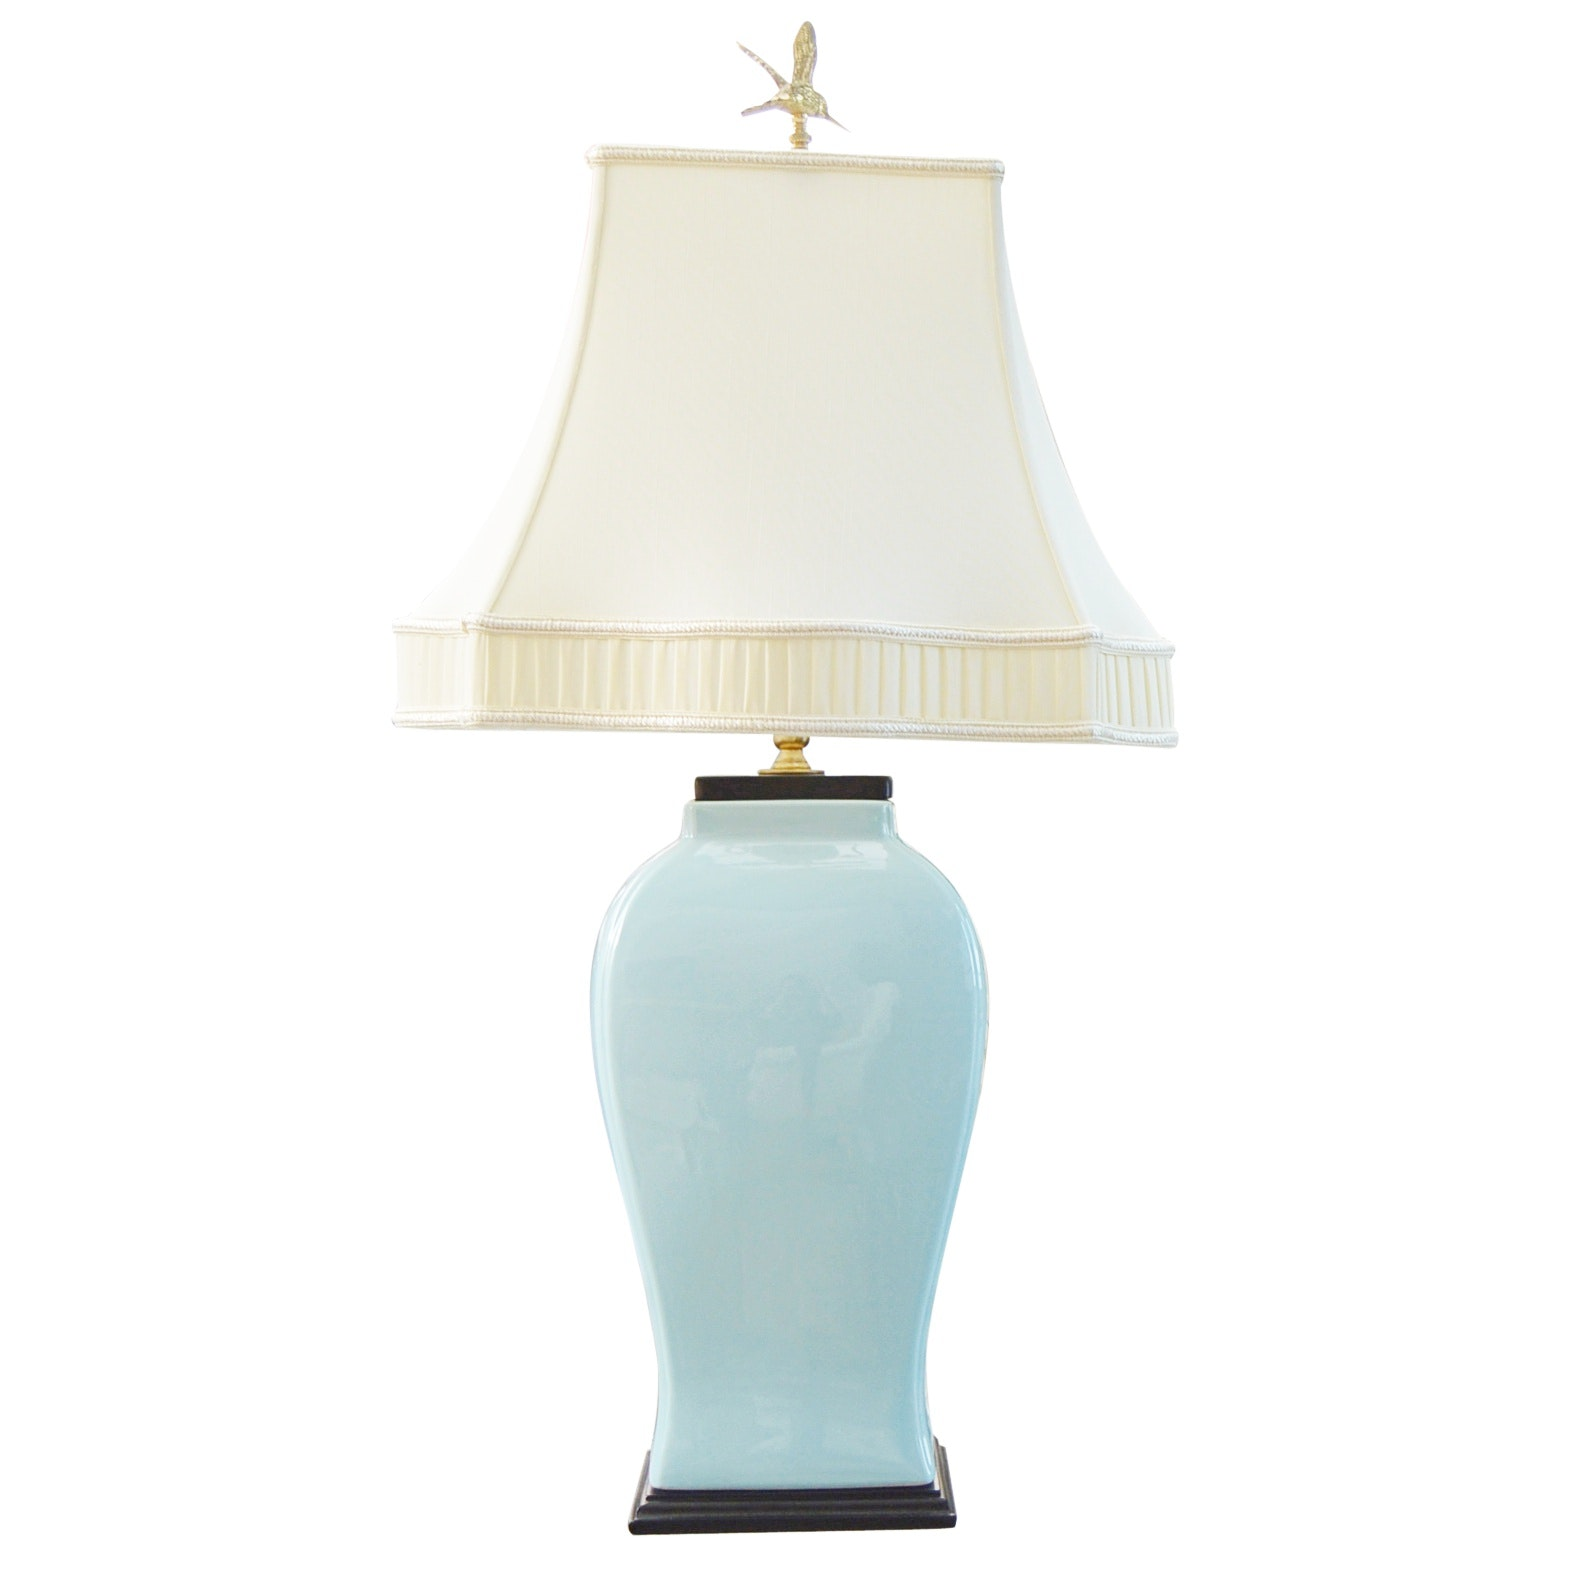 Blue Porcelain Urn Table Lamp